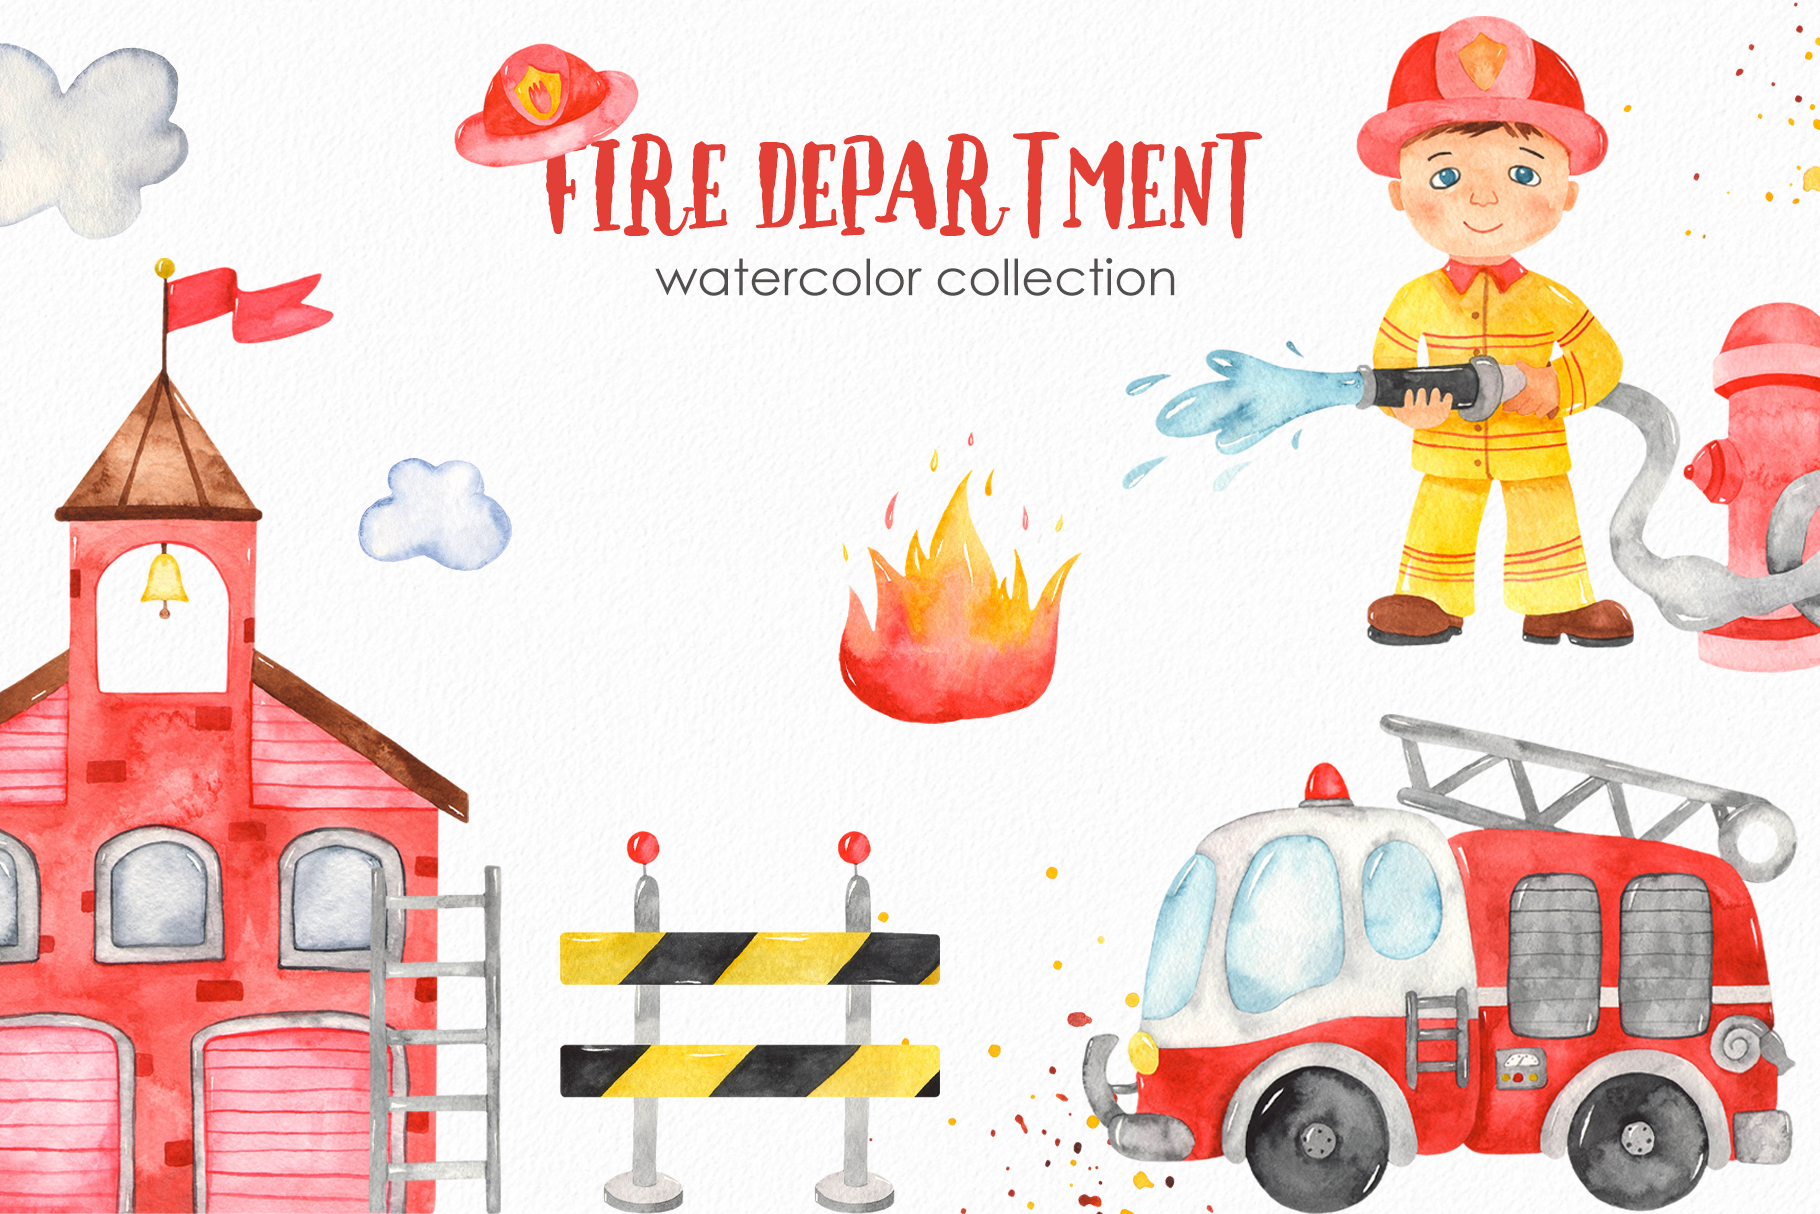 Fire Department watercolor cover